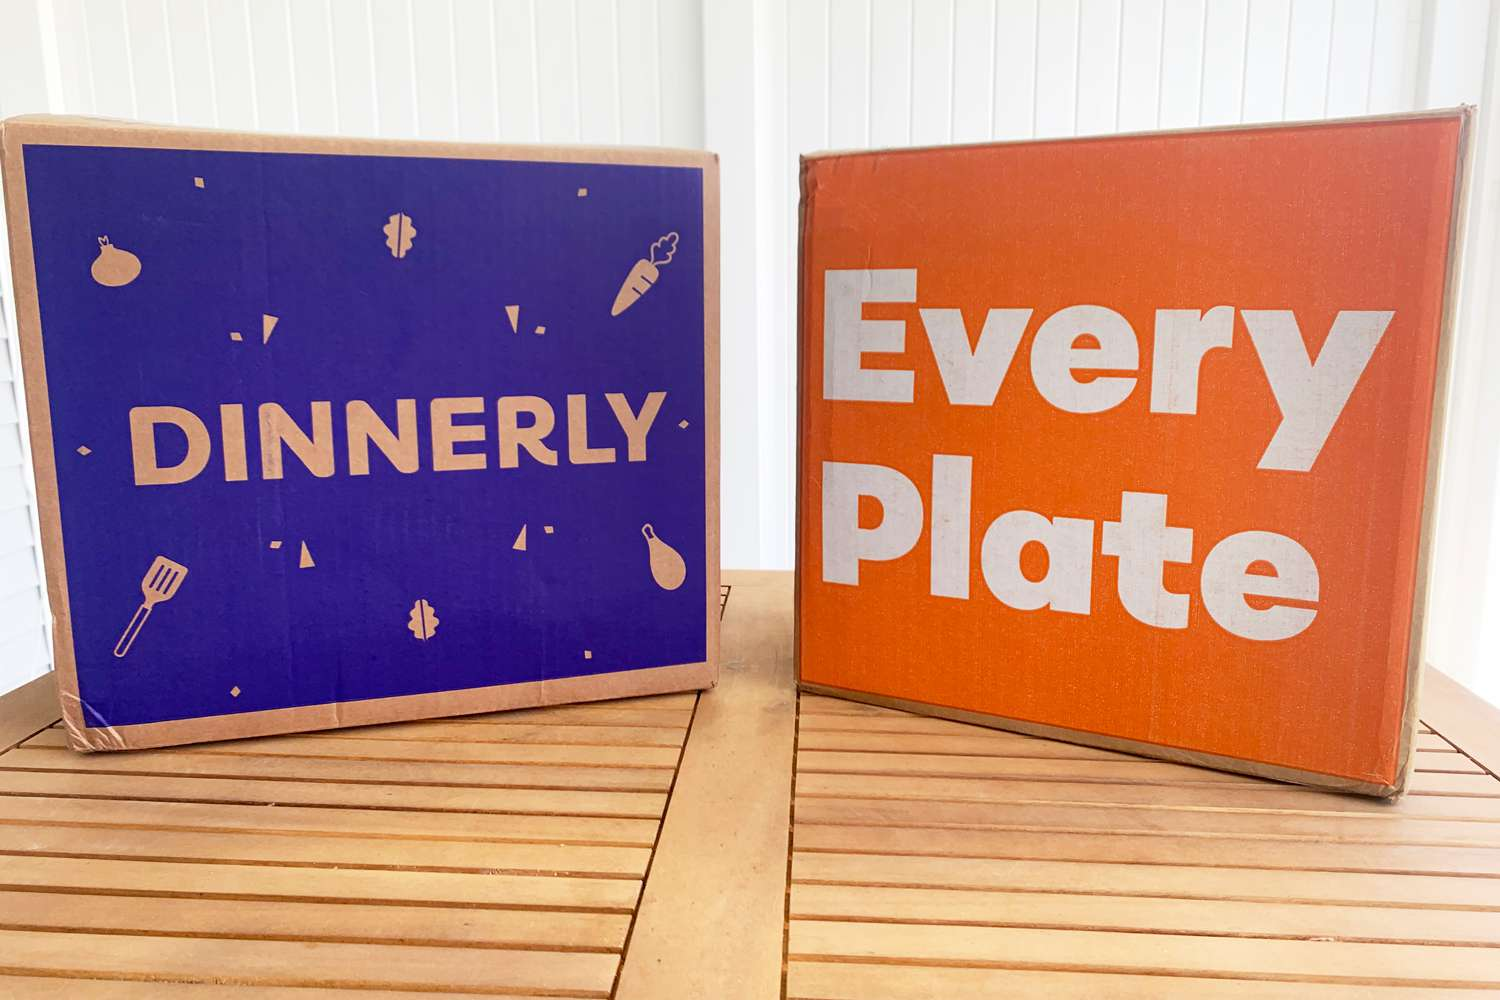 Dinnerly and EveryPlate boxes